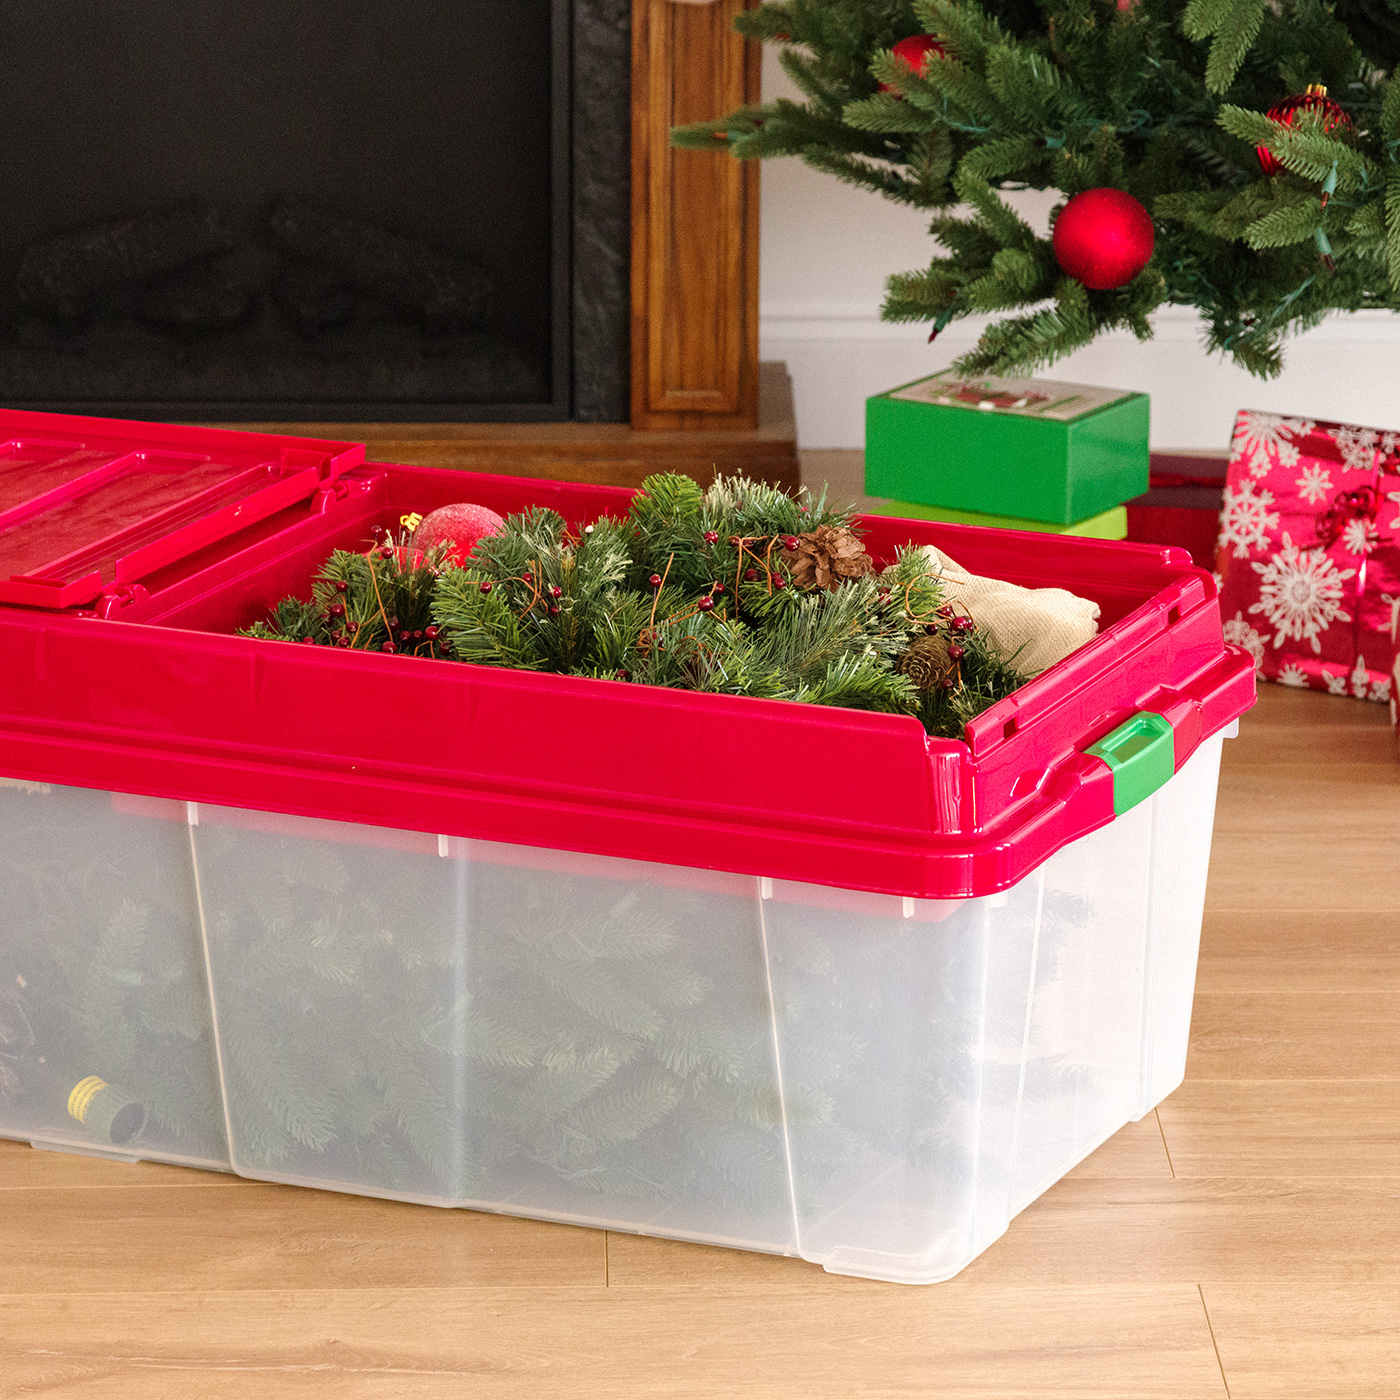 Christmas Tree Bin Cage.Iris Holiday Tree Storage Tote With Compartment Lid Red